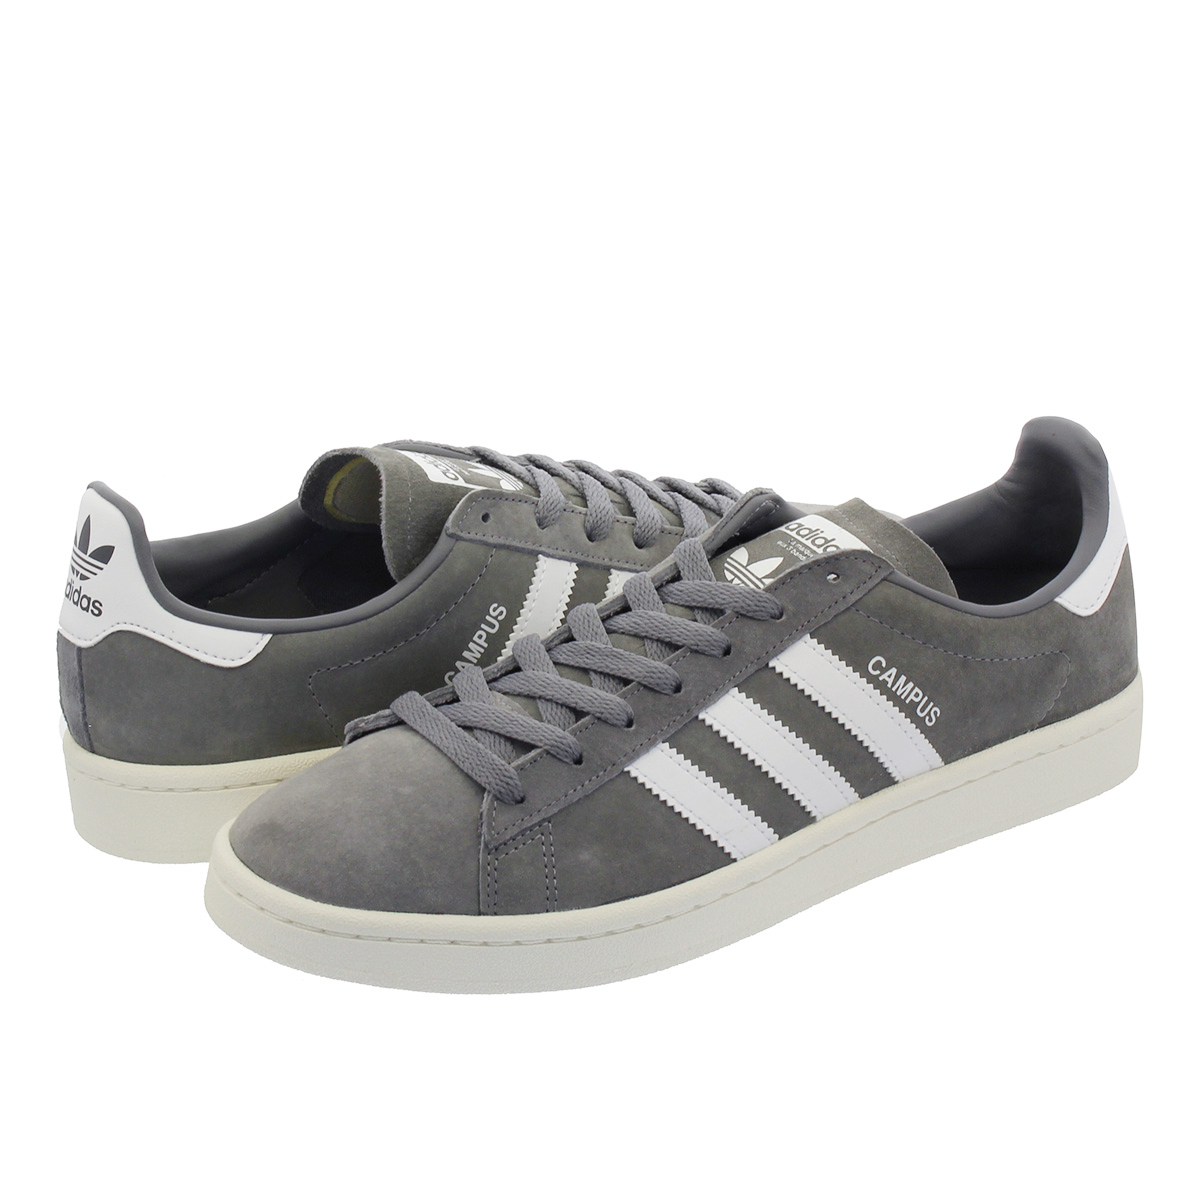 【7月16日(月)再入荷】 adidas CAMPUS 【adidas Originals】 アディダス キャンパス GREY/RUNNING WHITE/CHALK WHITE